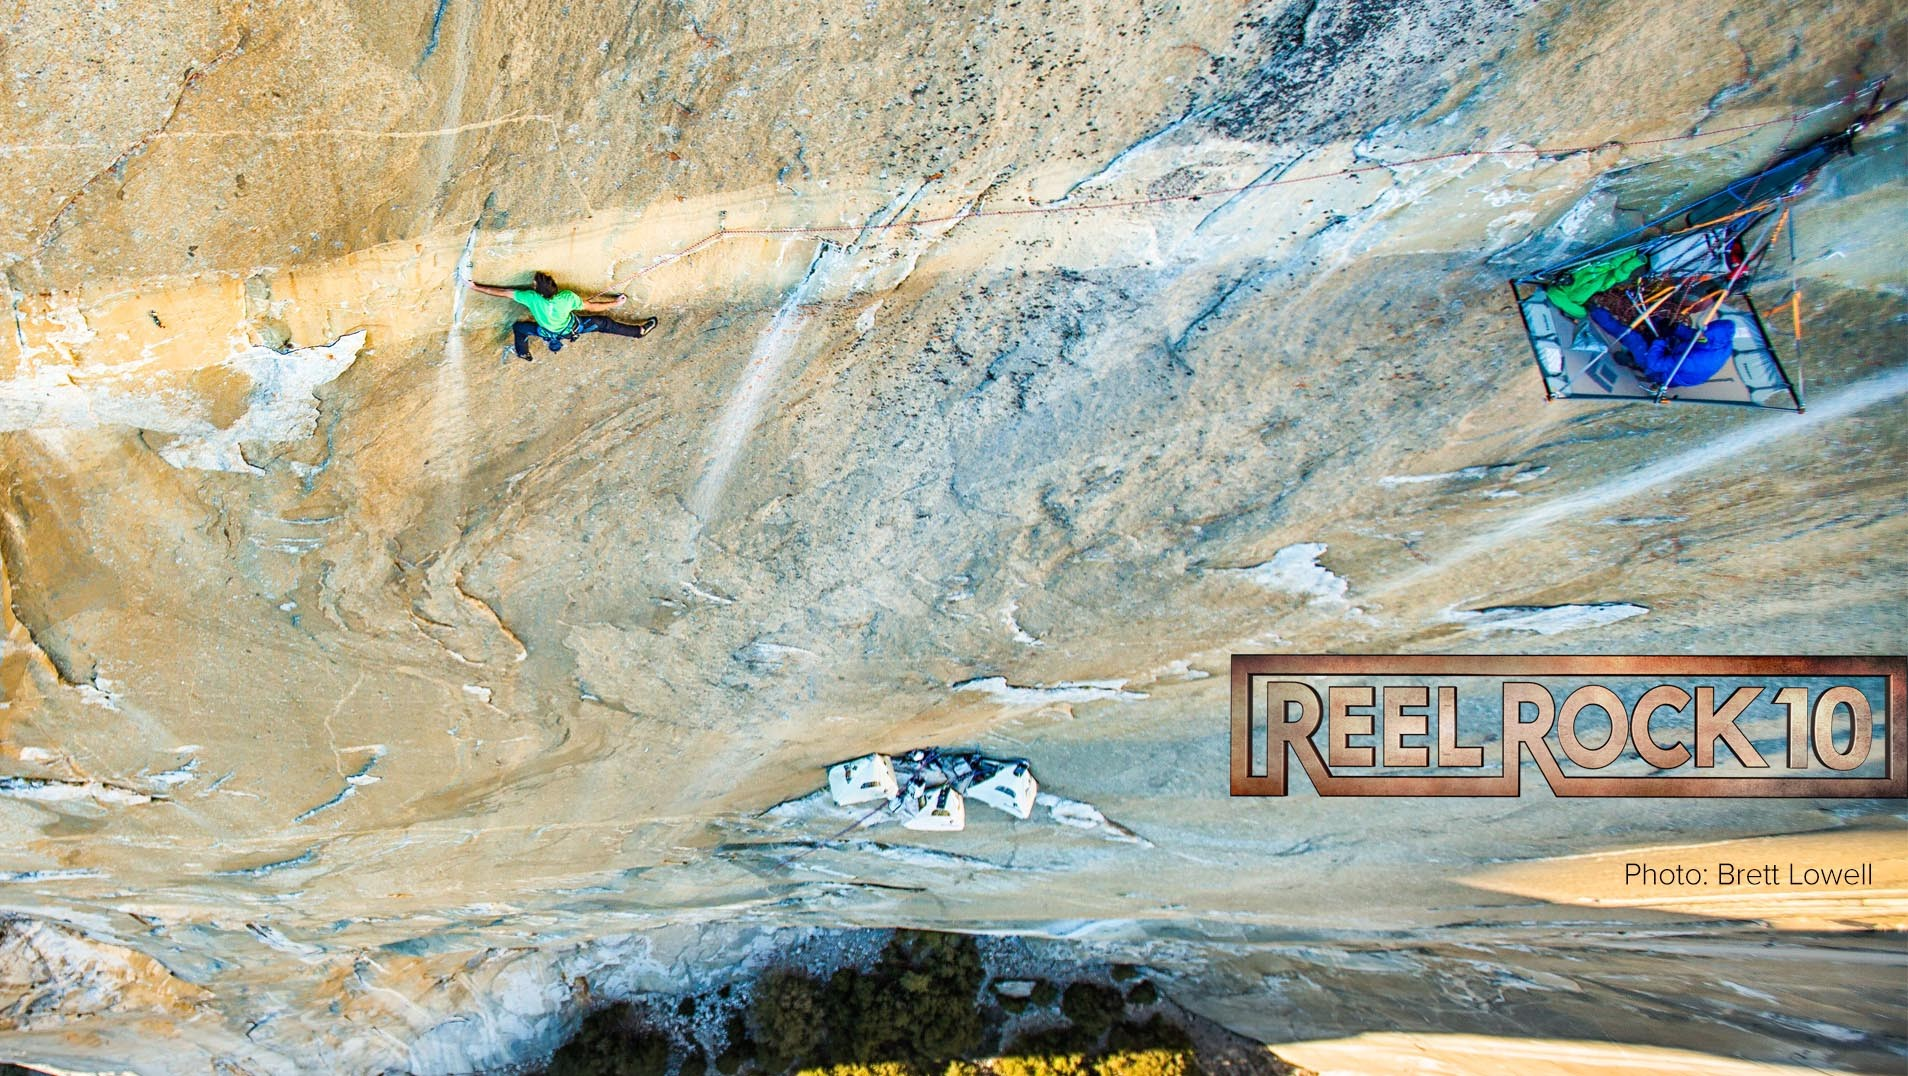 REEL ROCK 10 – Showing at all our locations